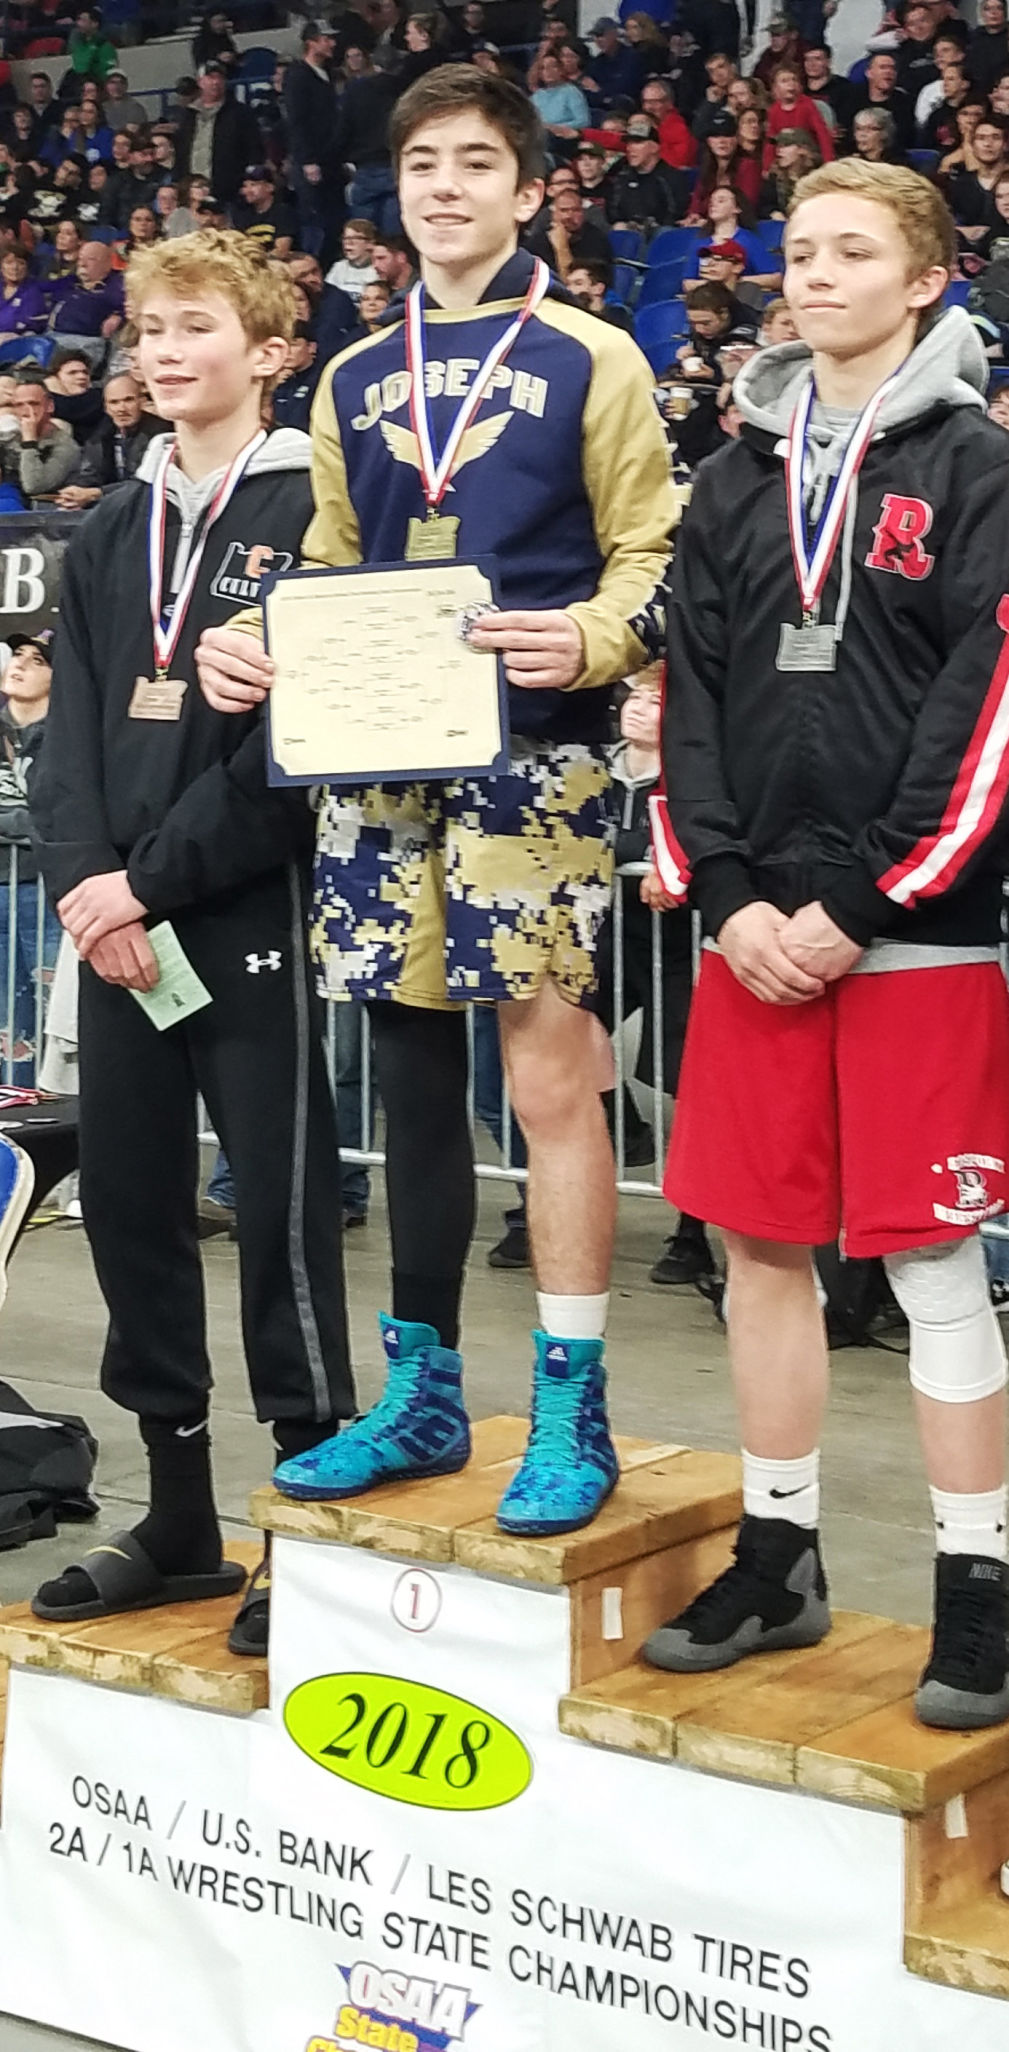 Three county wrestlers bring back medals from state championships